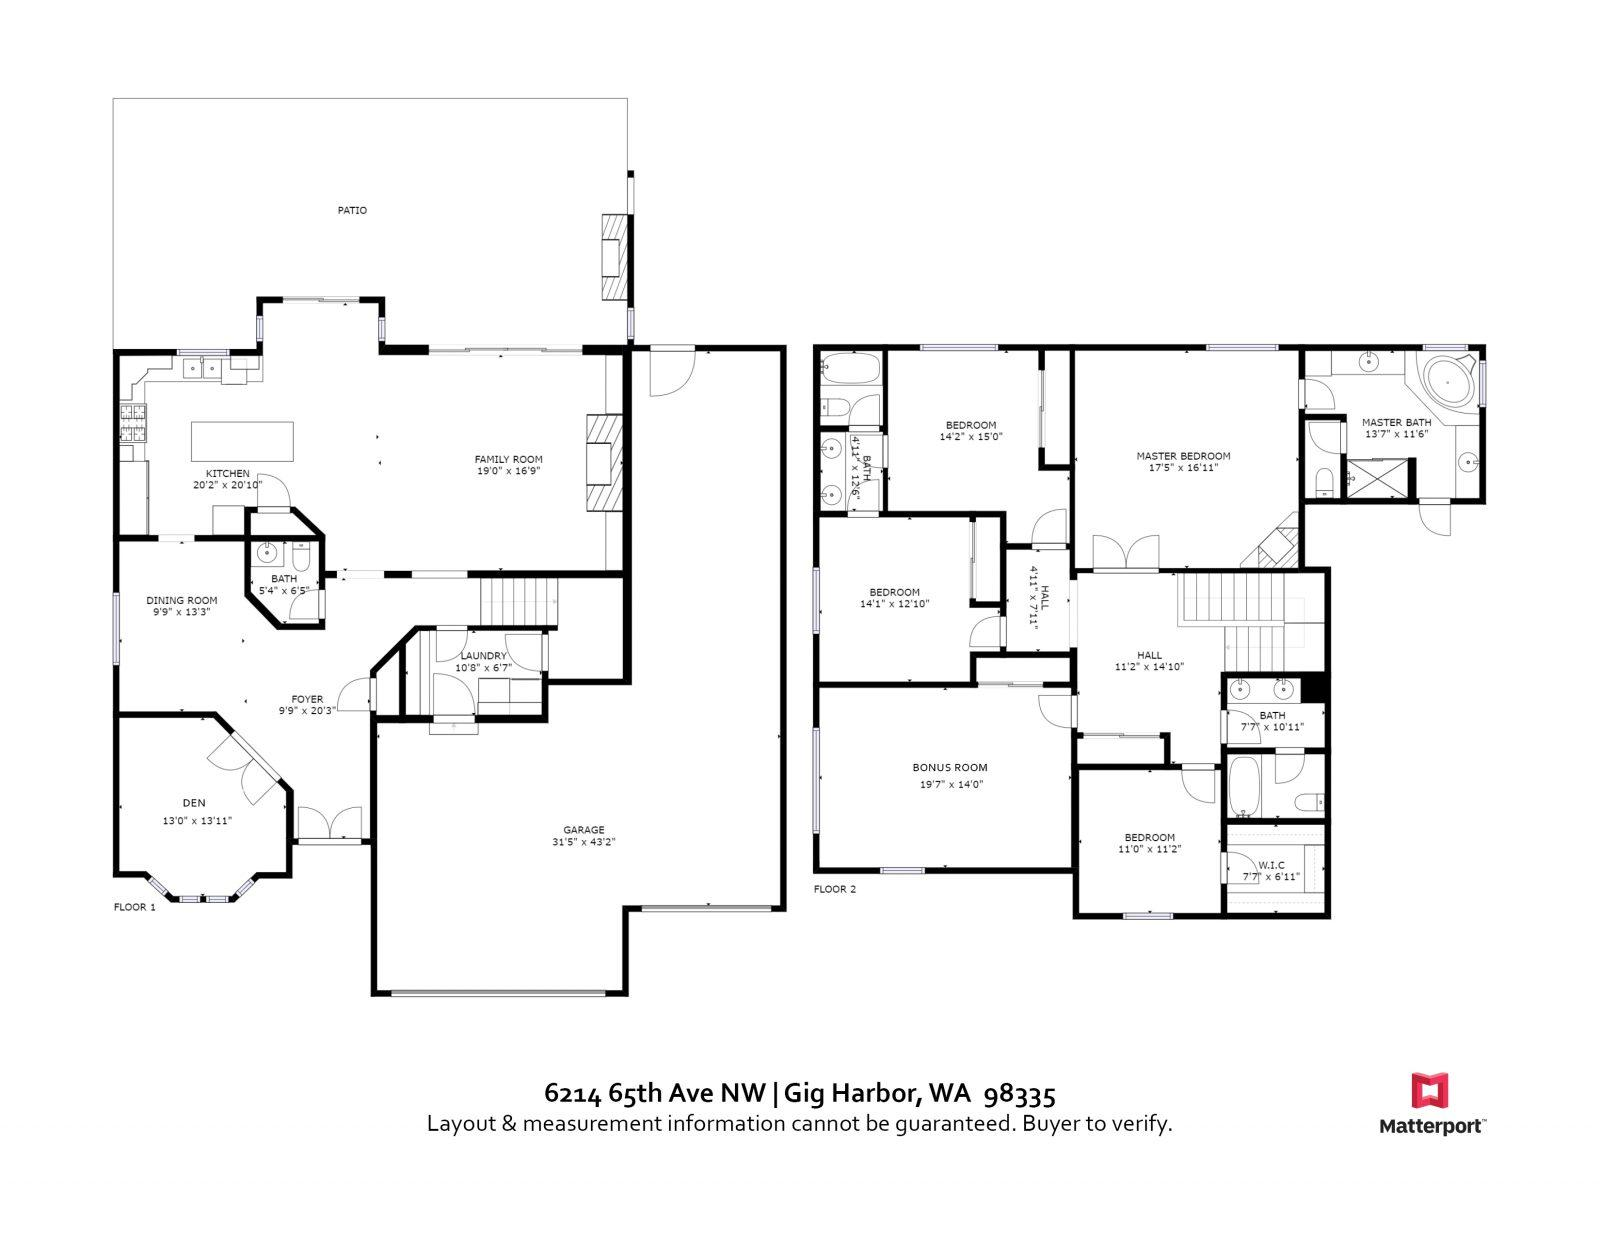 Floor Plan | 6214 65th Ave NW, Gig Harbor WA 98335